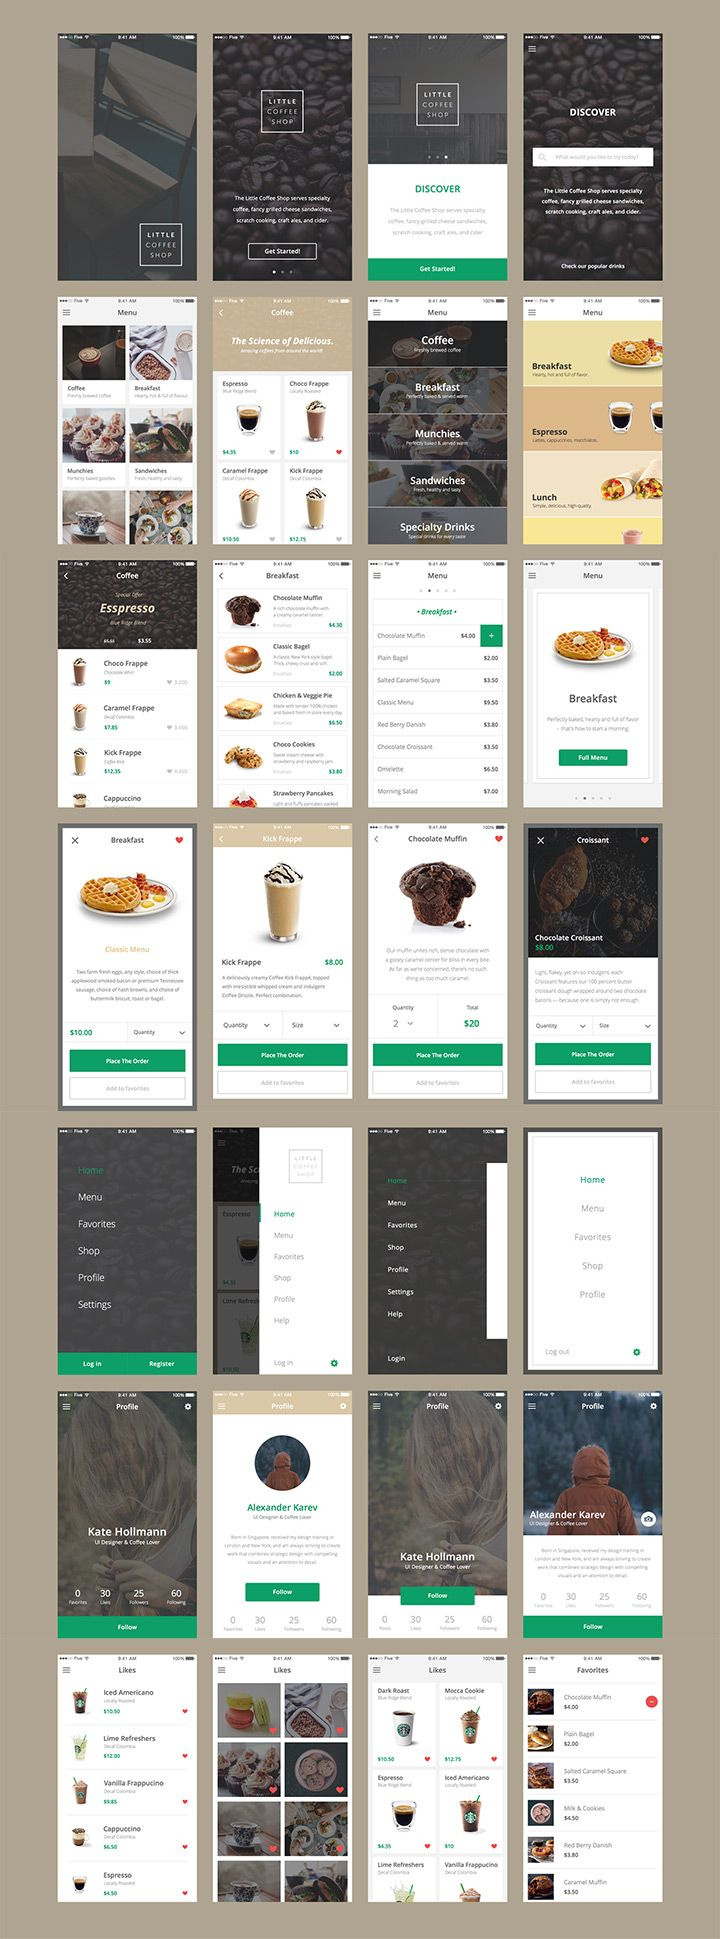 An exclusive free UI kit for e-commerce app created at Five agency. This kit - designed in Sketch - is the first of five. - Detailed image